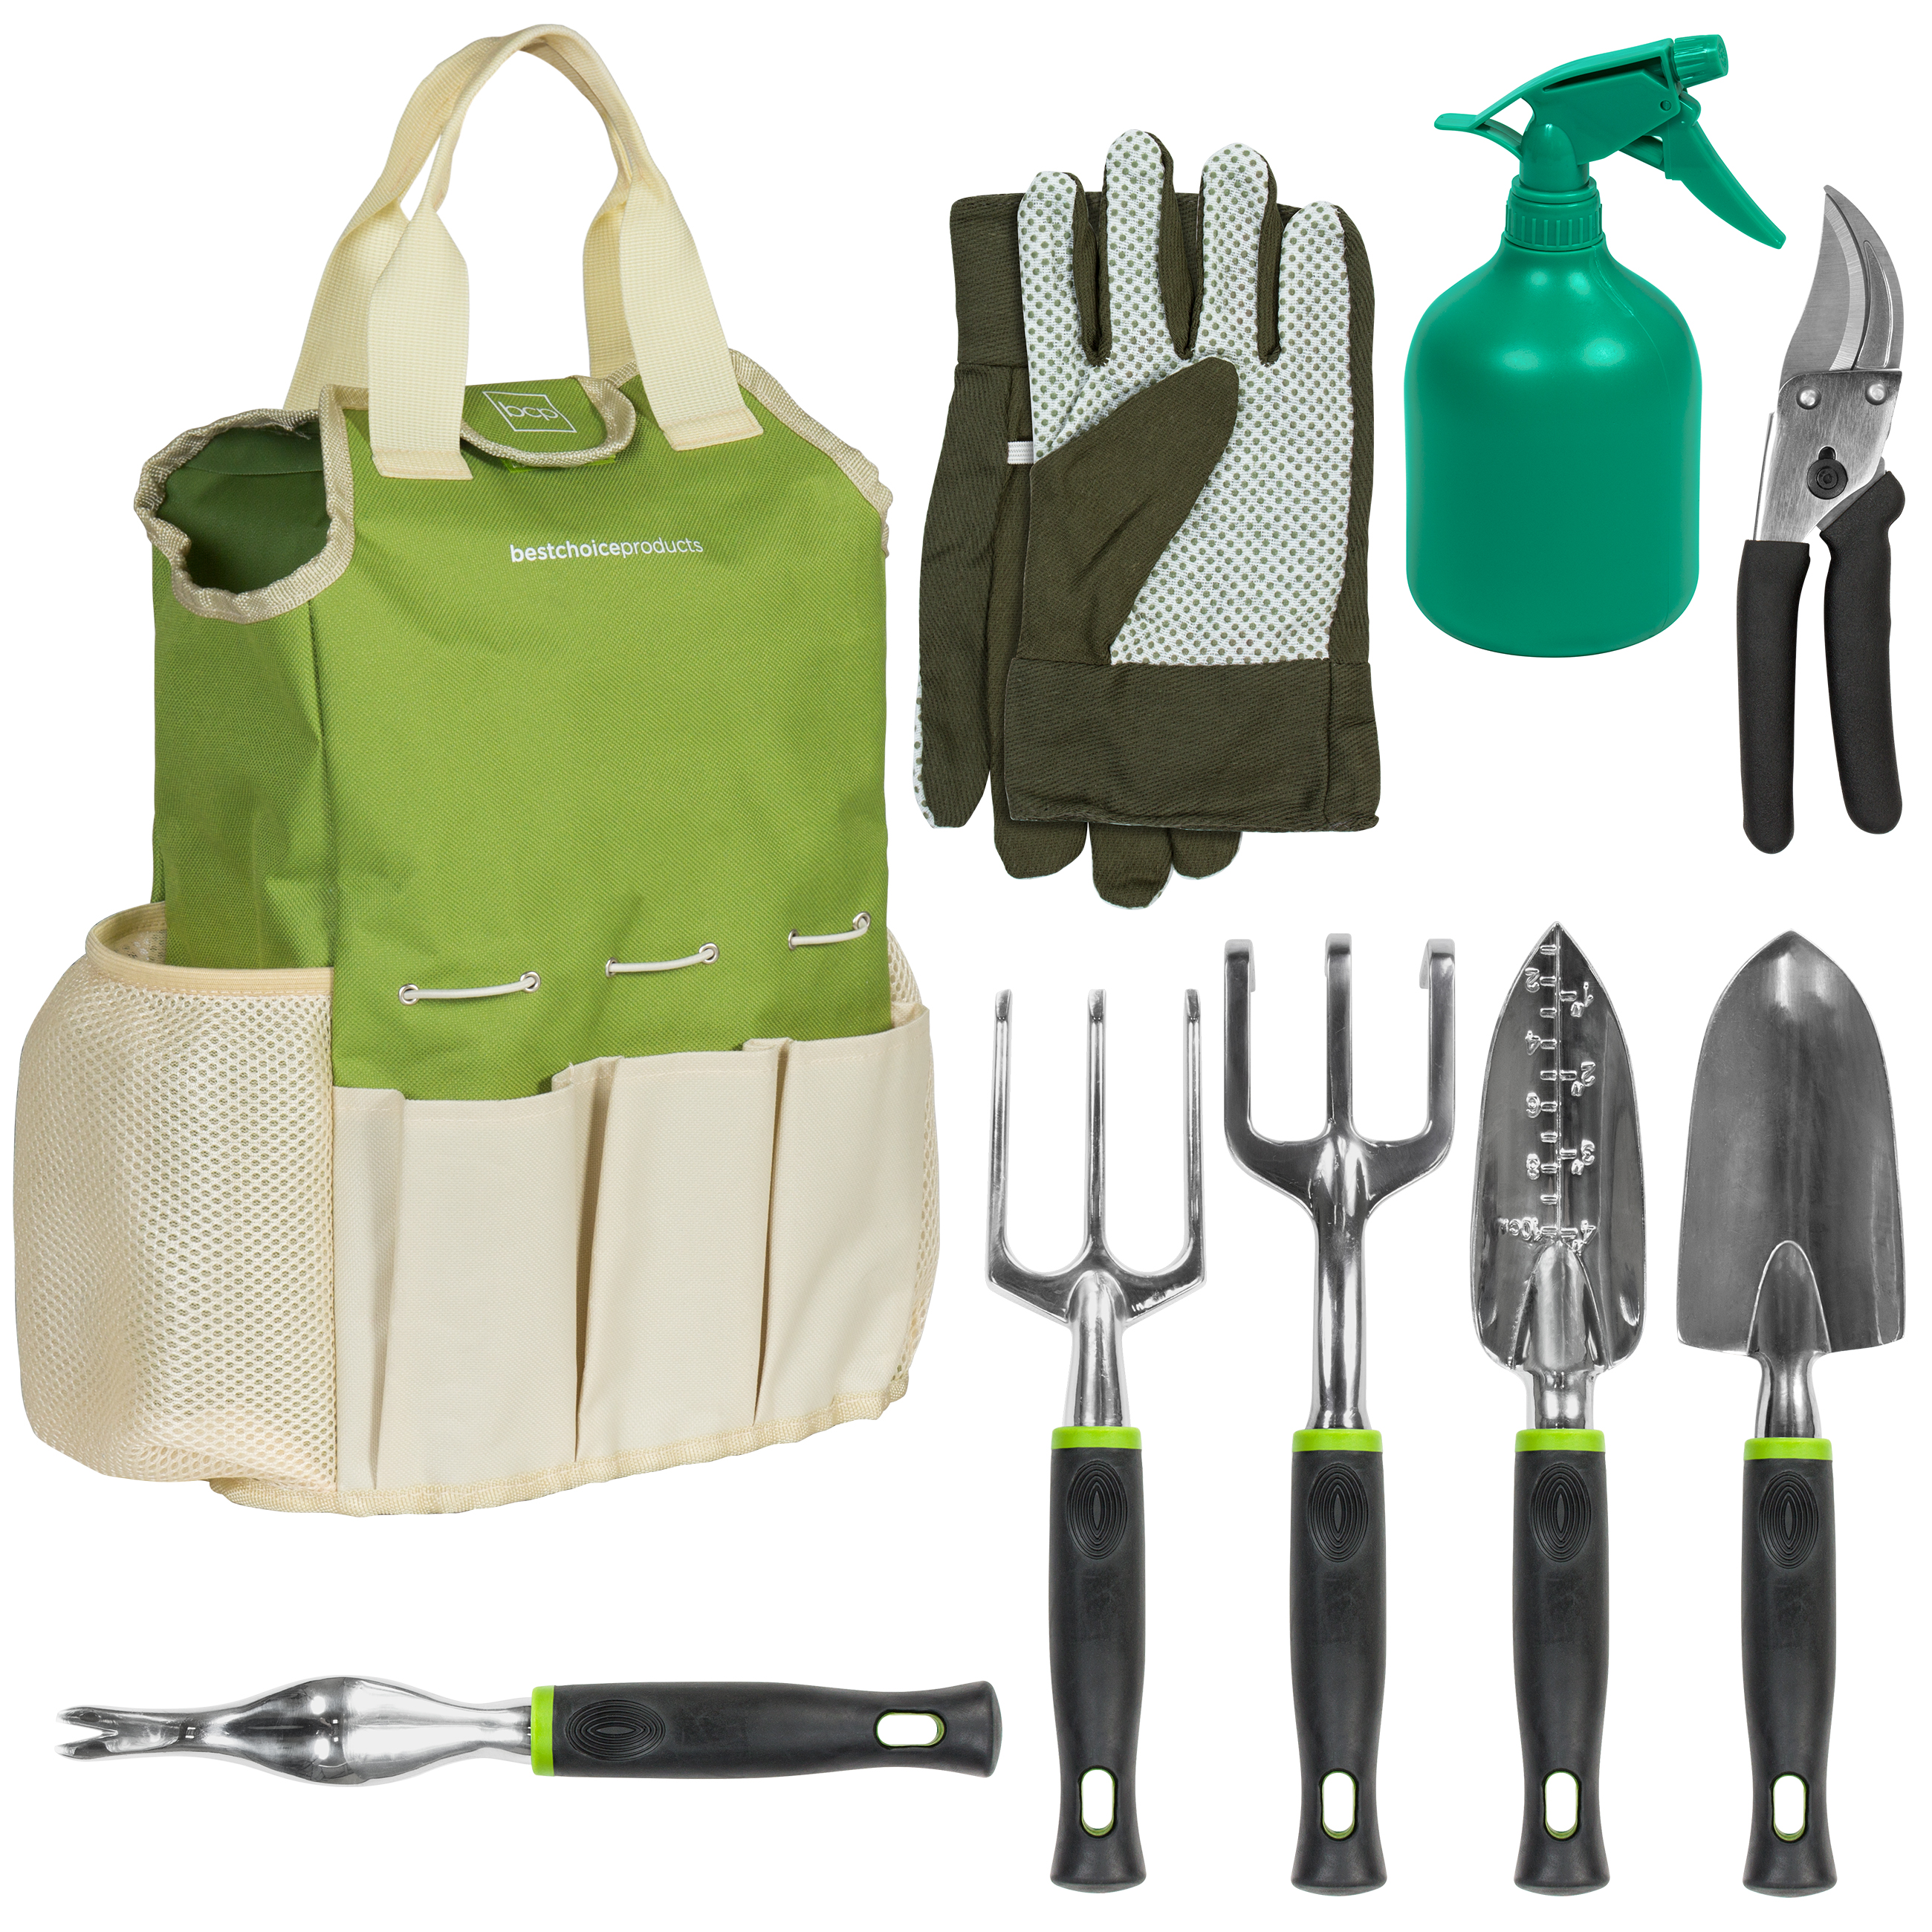 Best Choice Products 9 Piece Gardening Tool Set W/ Hand Tools, Gloves,